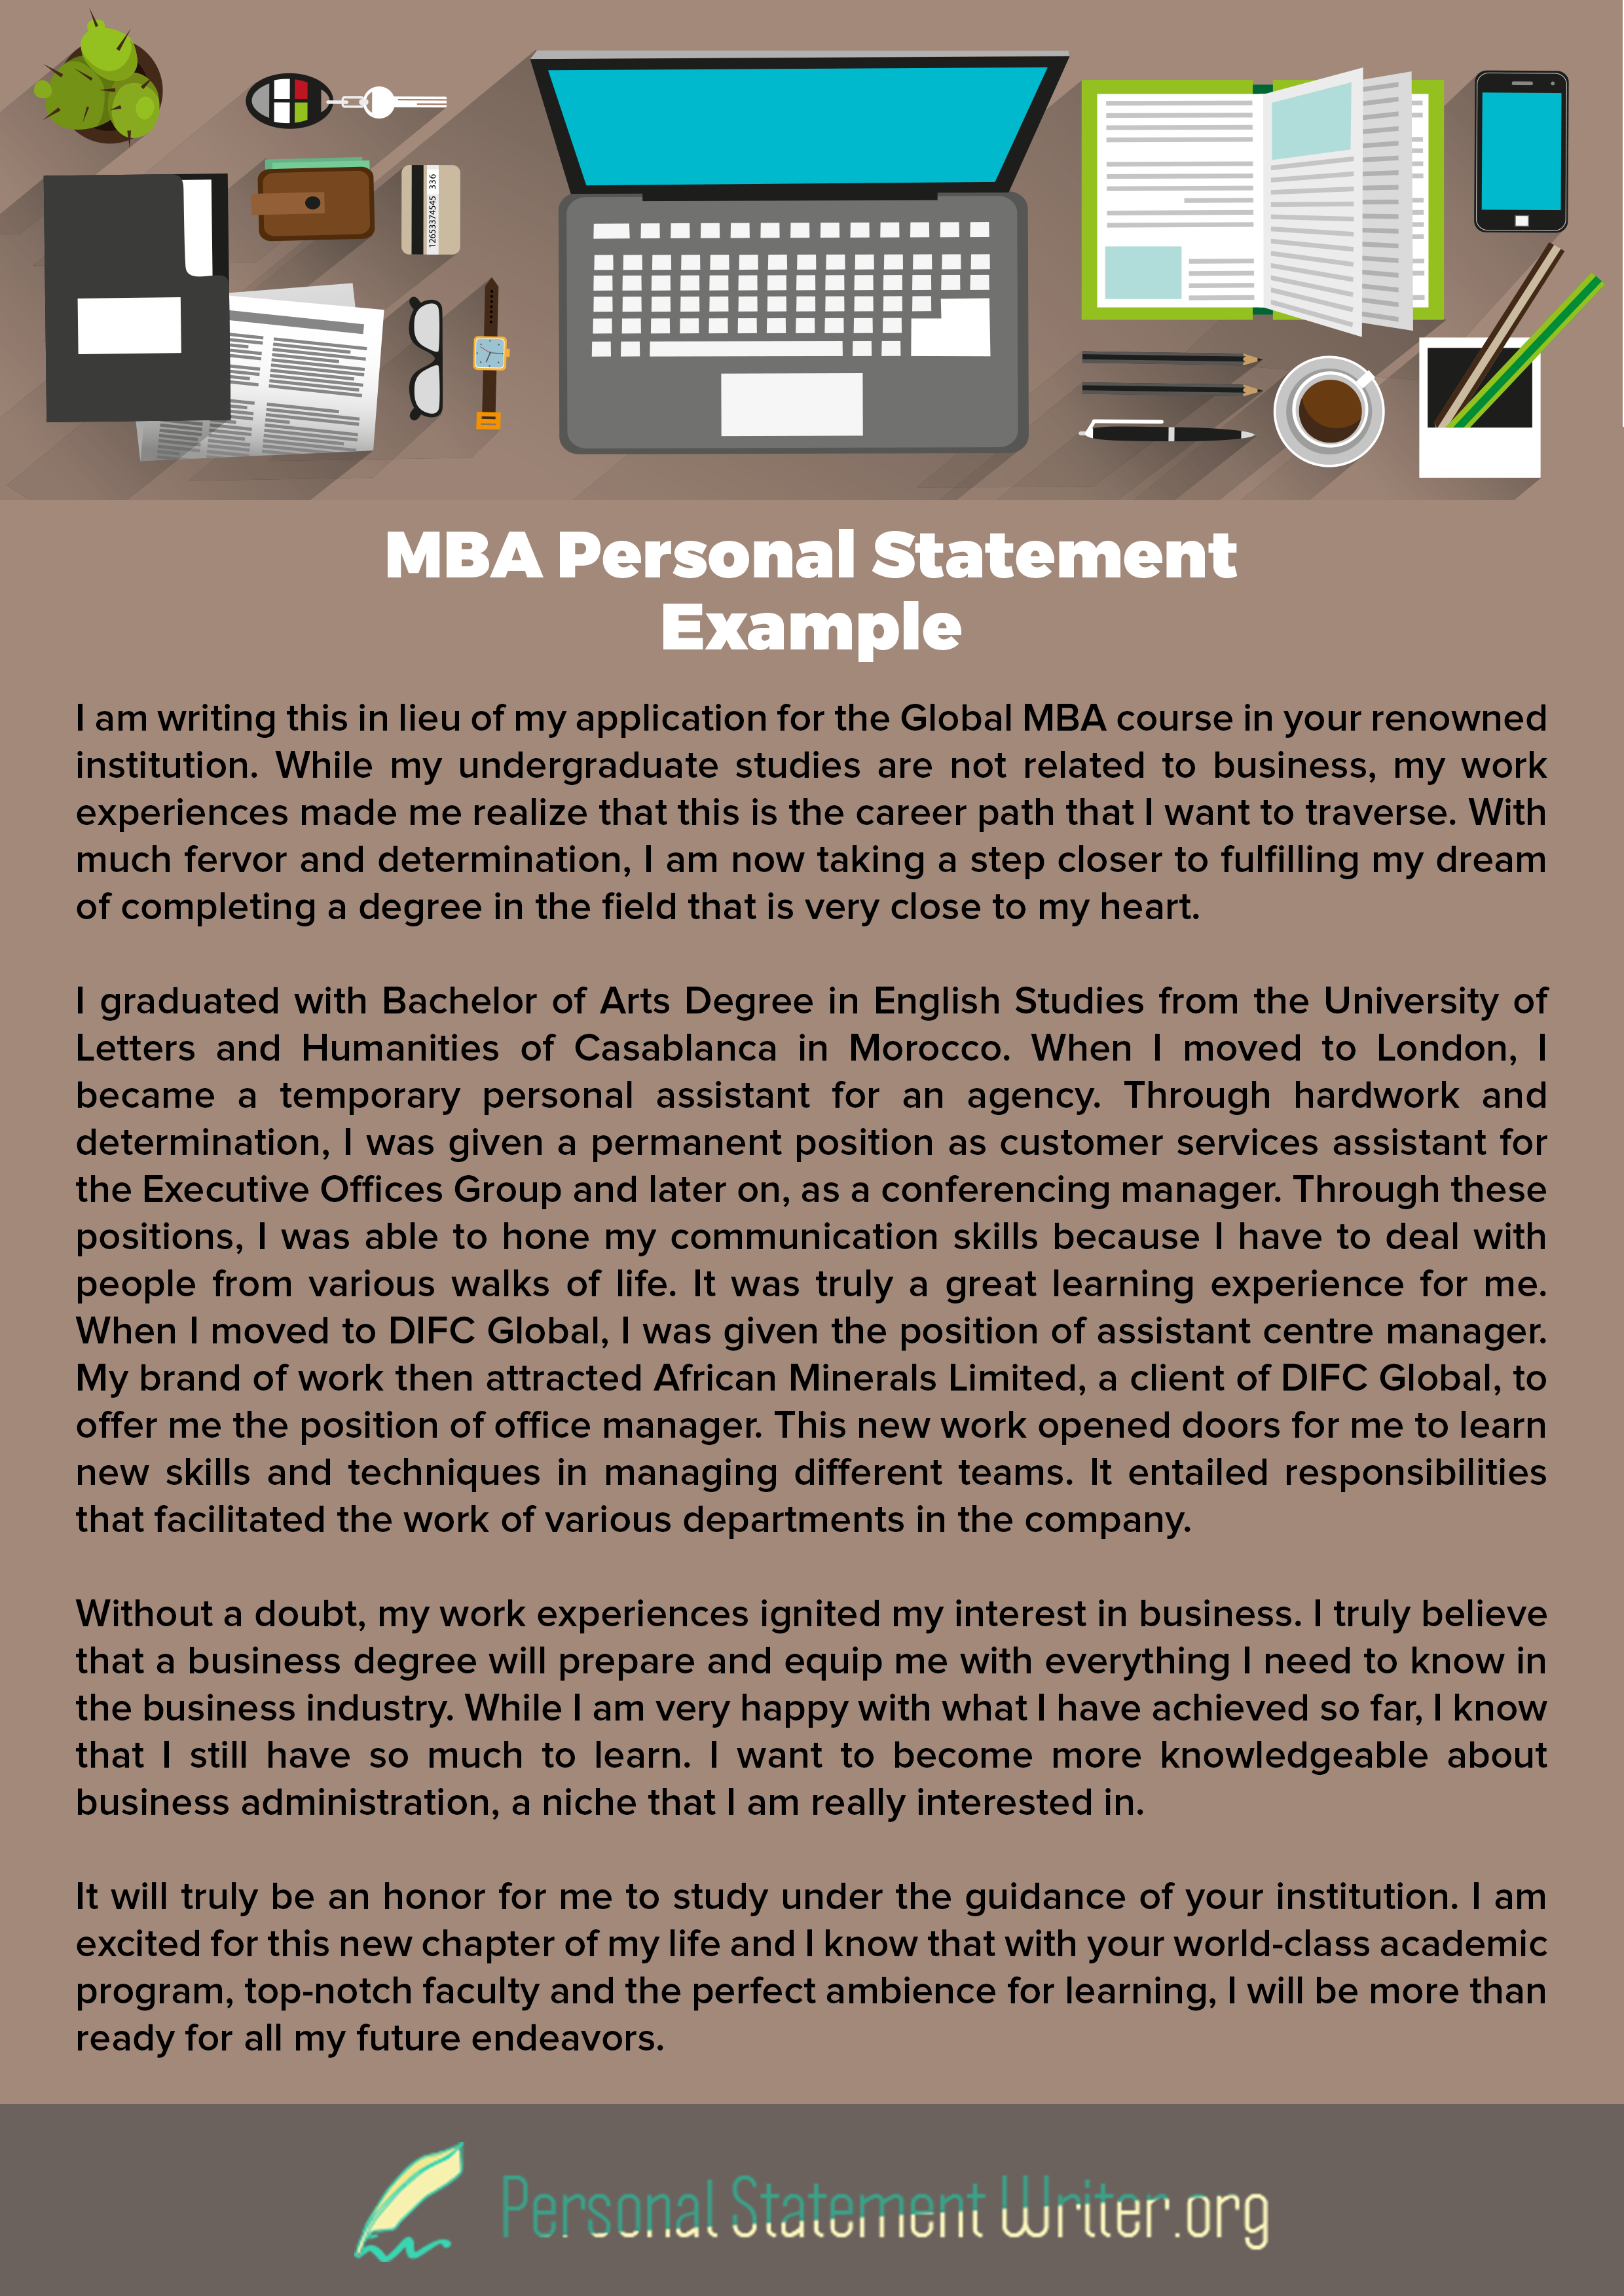 mba personal statement example